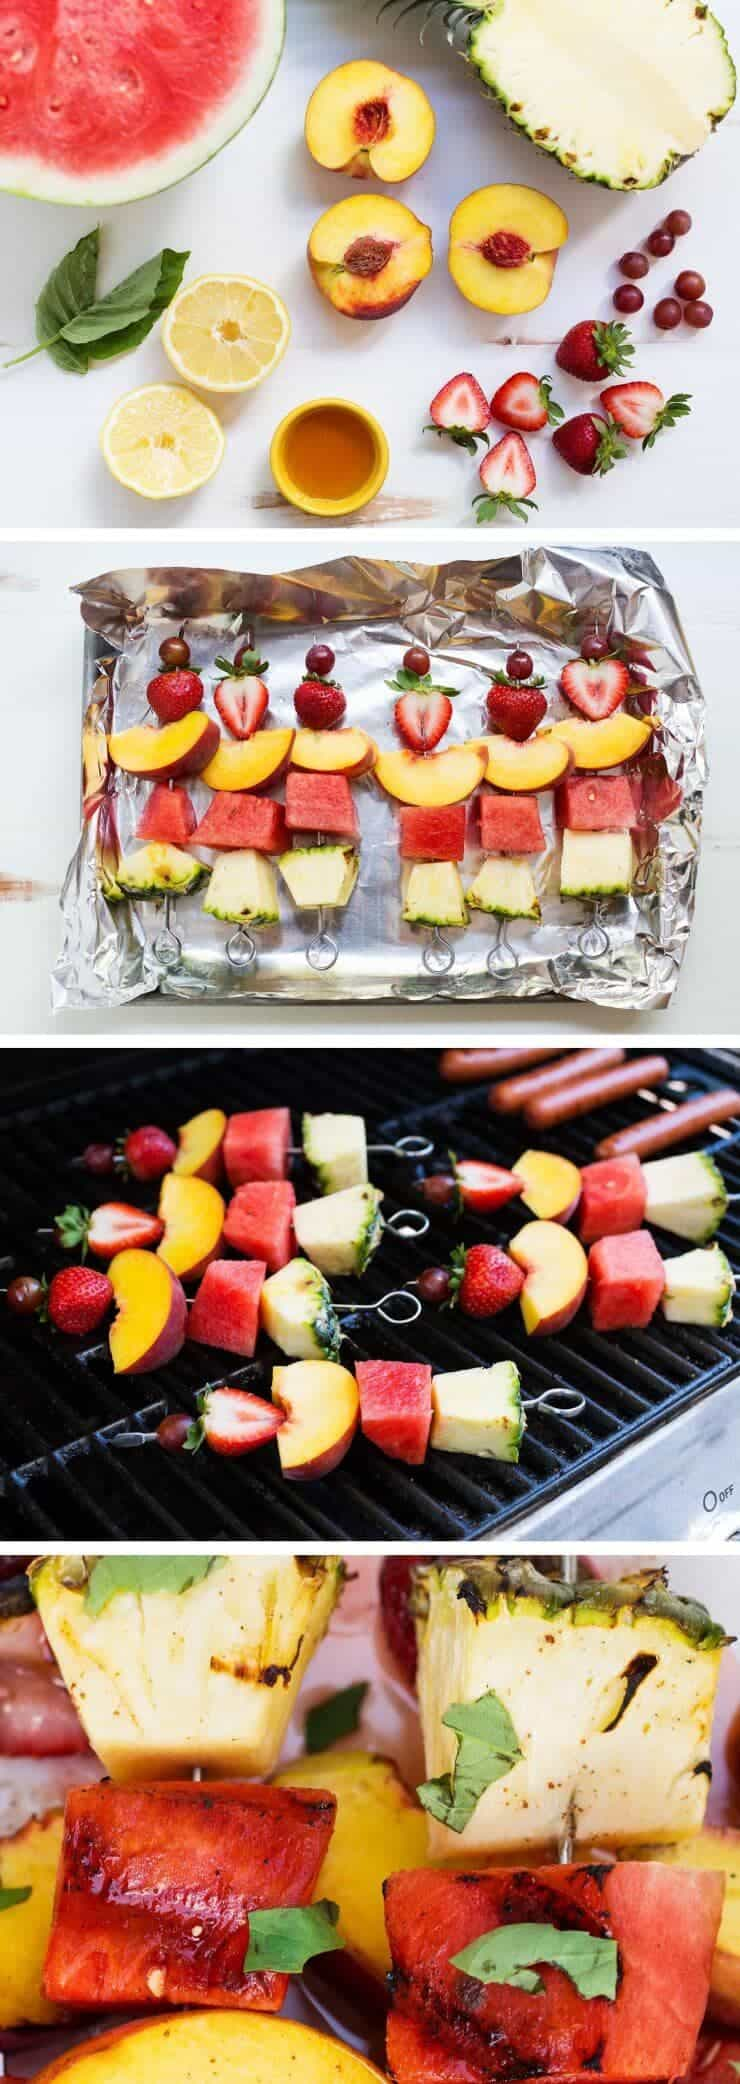 how to make kabobs